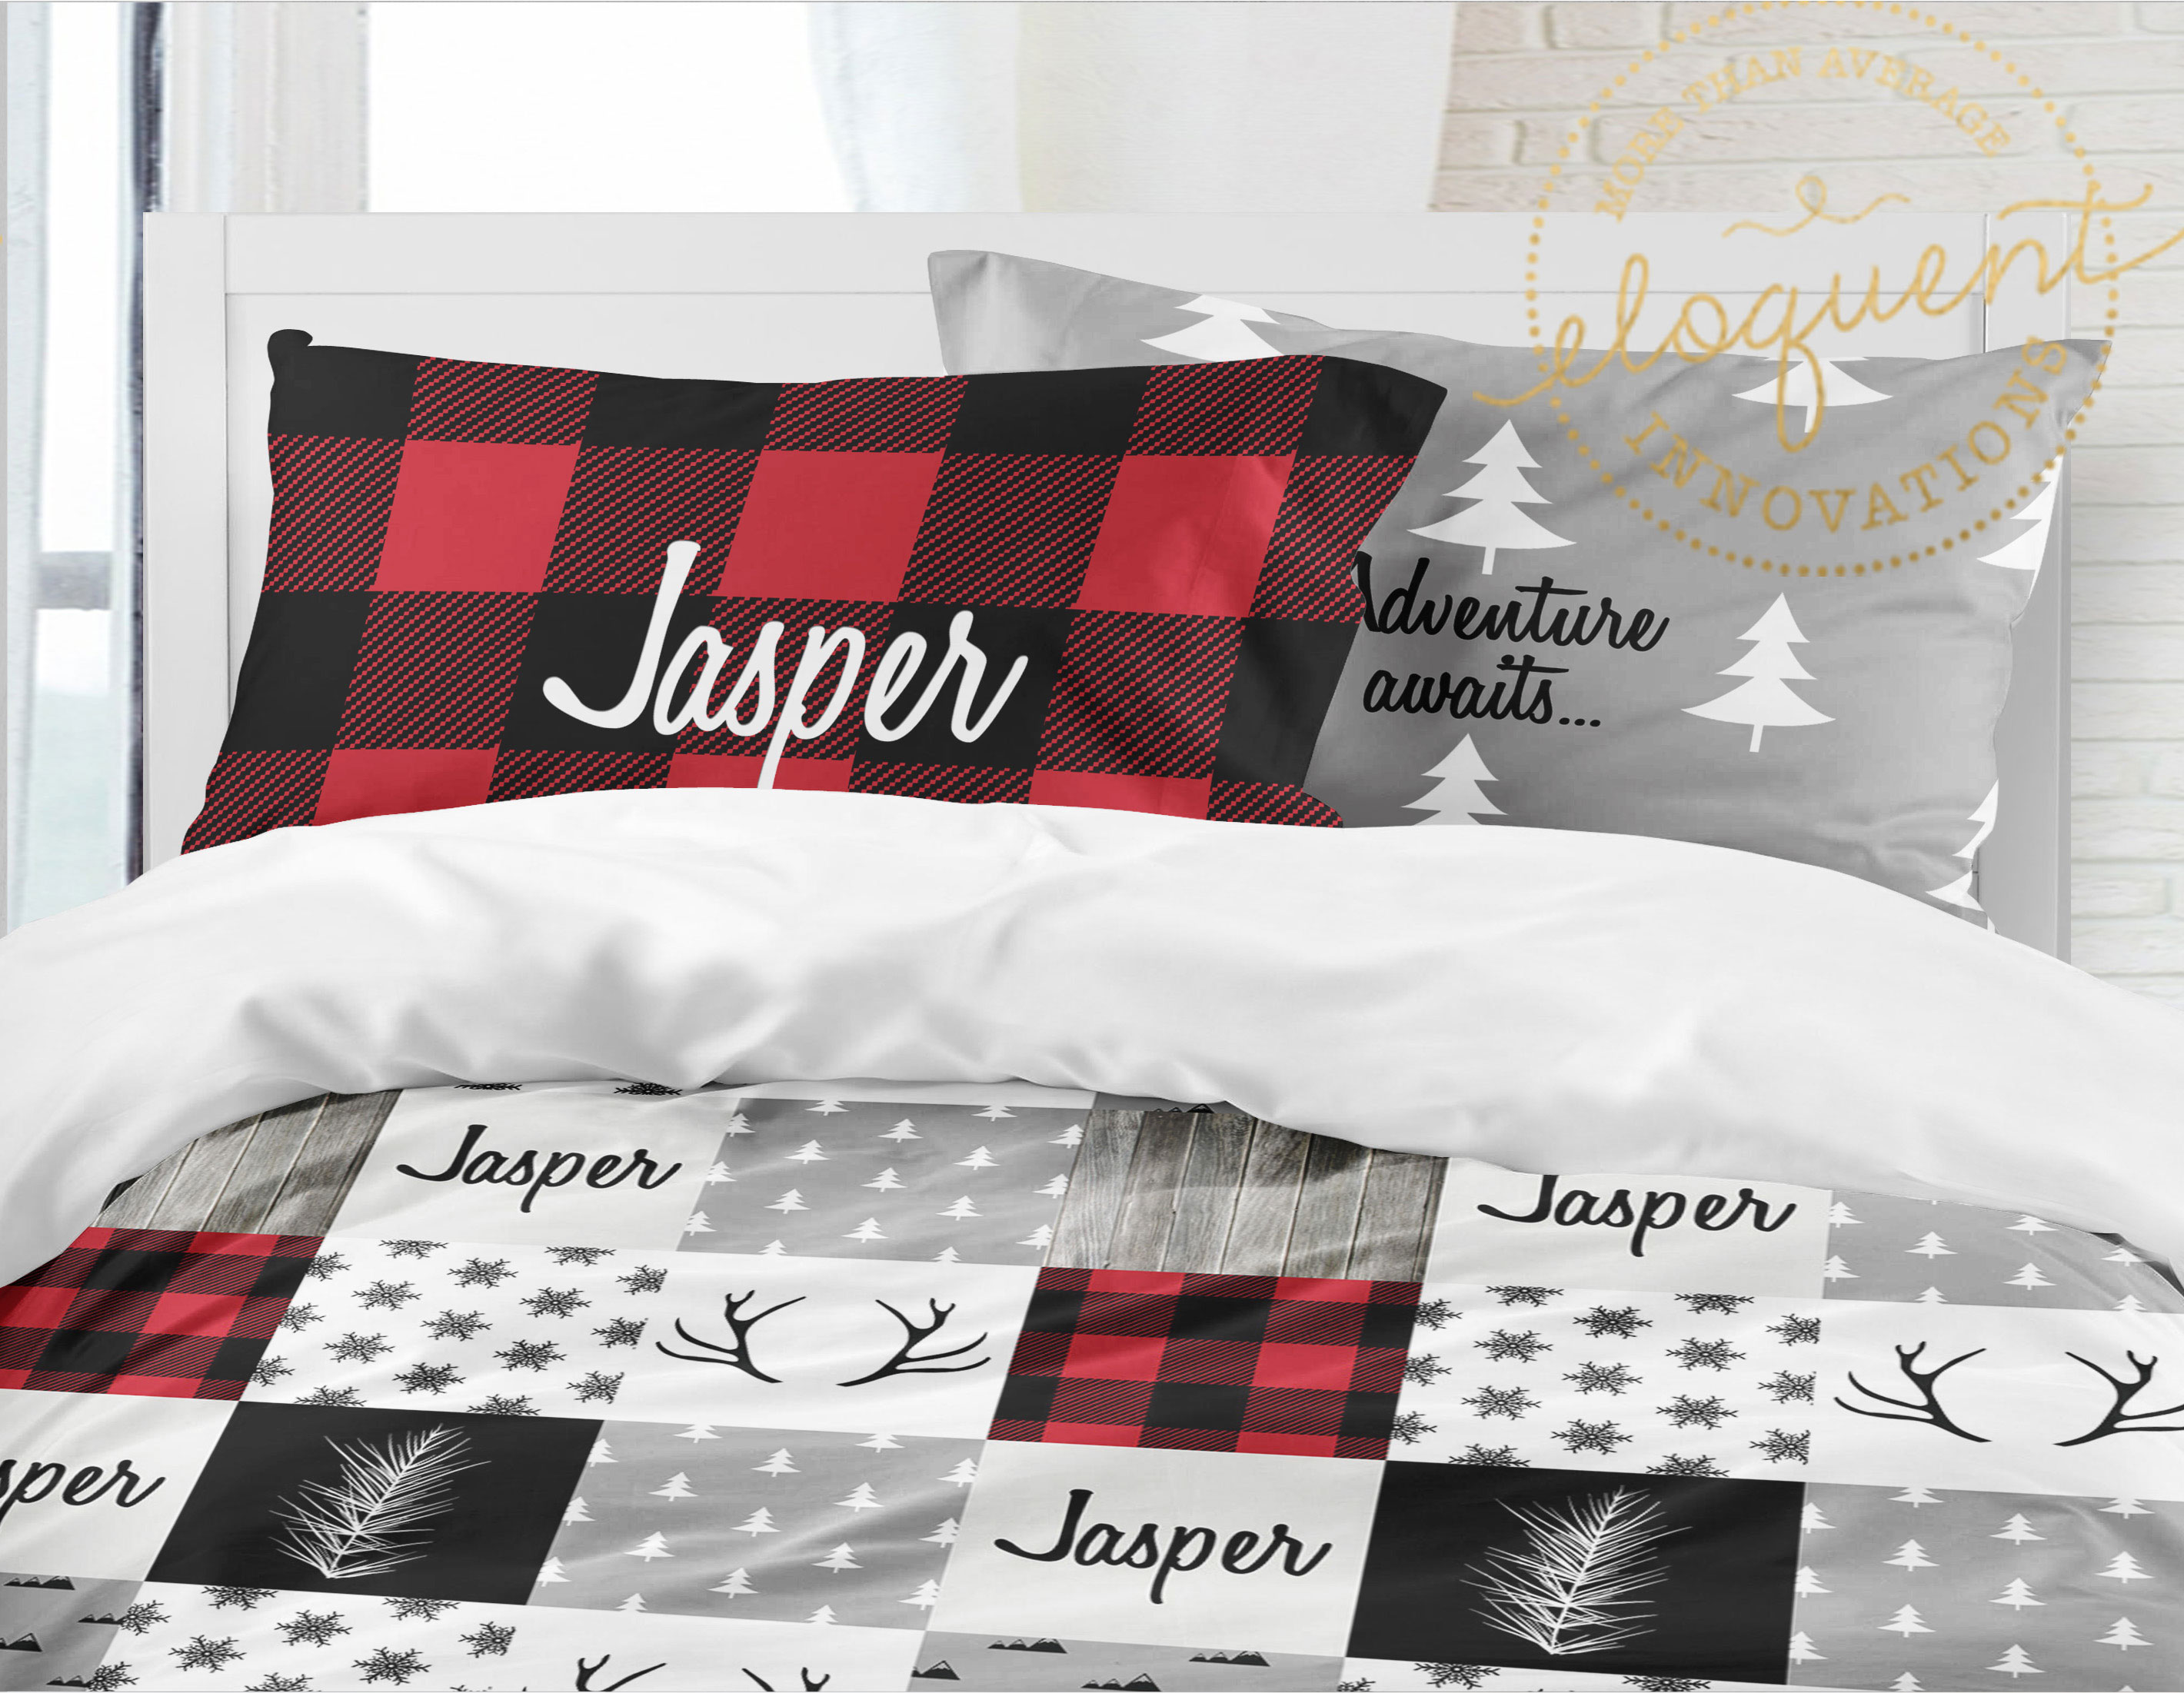 Christmas Comforter.Christmas Bedding Sets For Kids Plaid Woodland Bedding Red Personalized Comforter Or Duvet Cover 416